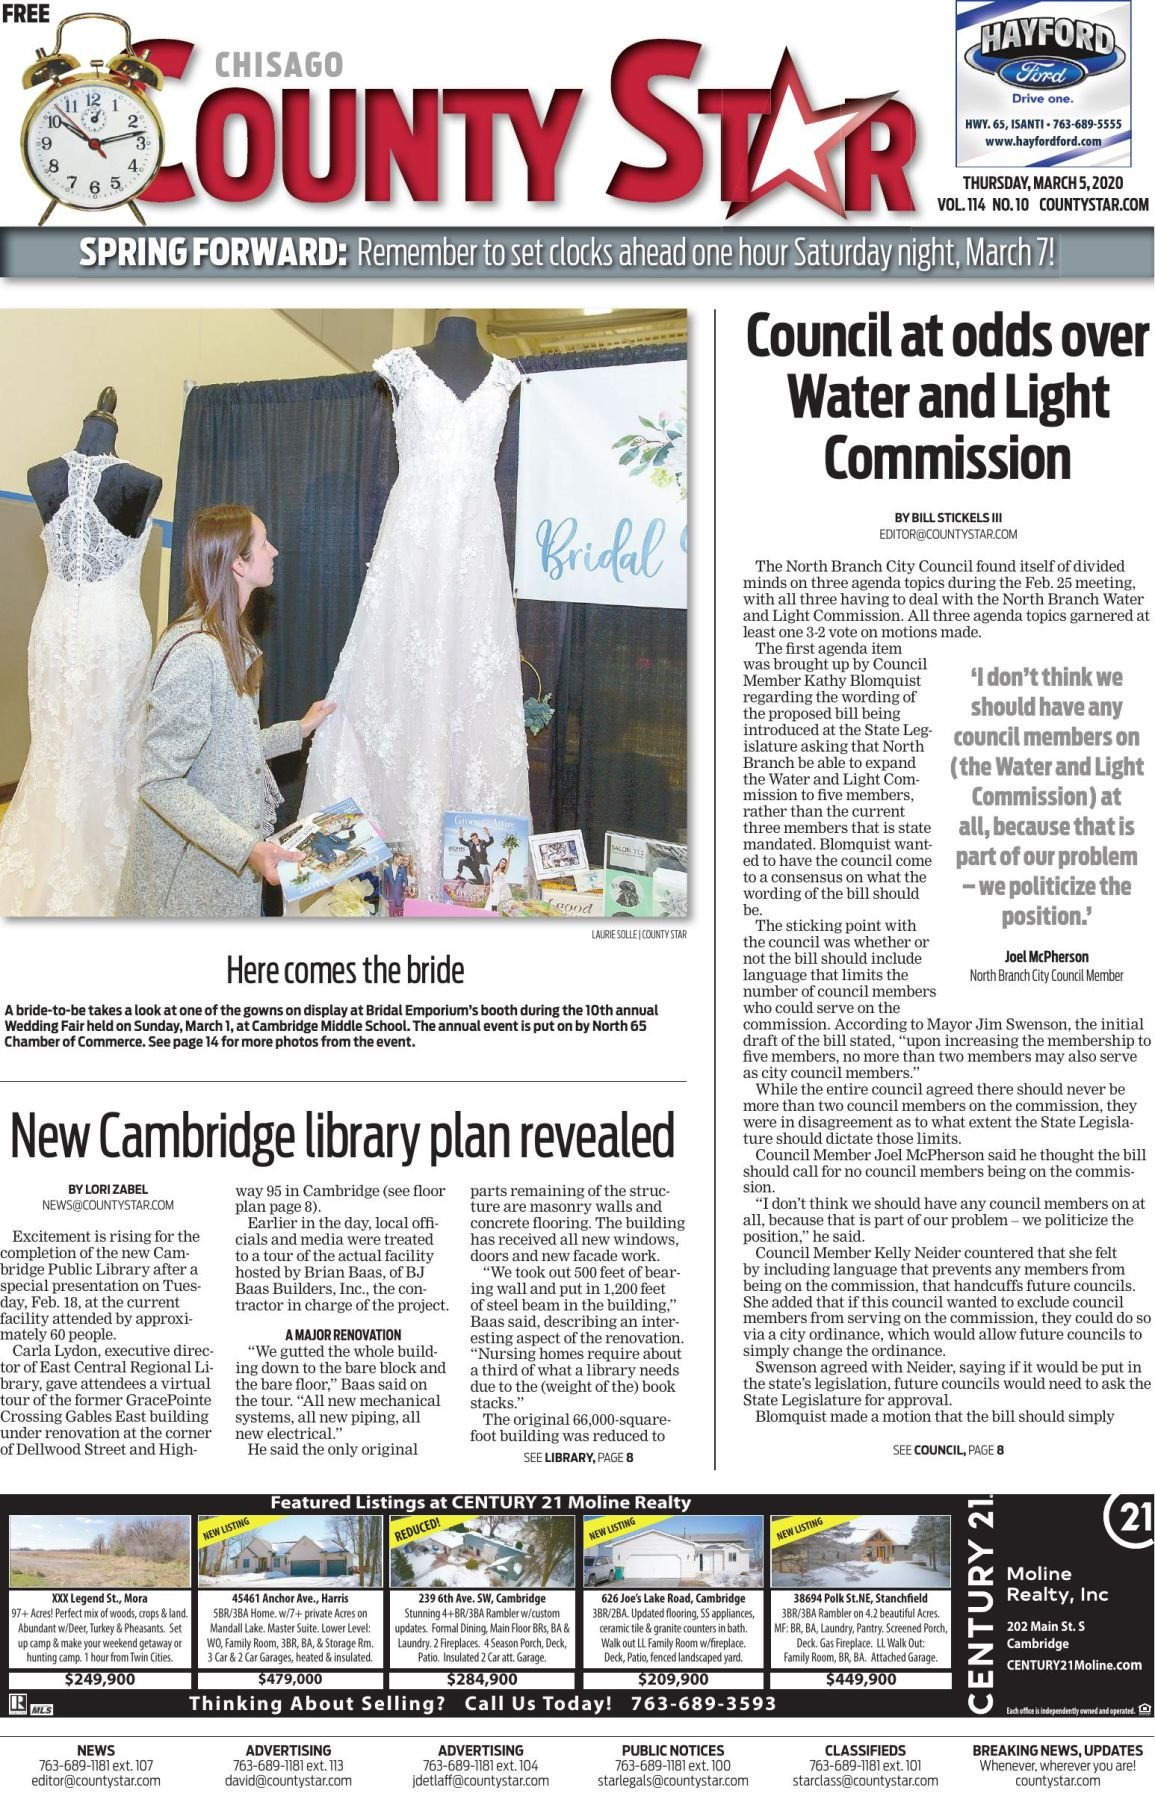 Chisago County Star March 5, 2020 e-edition